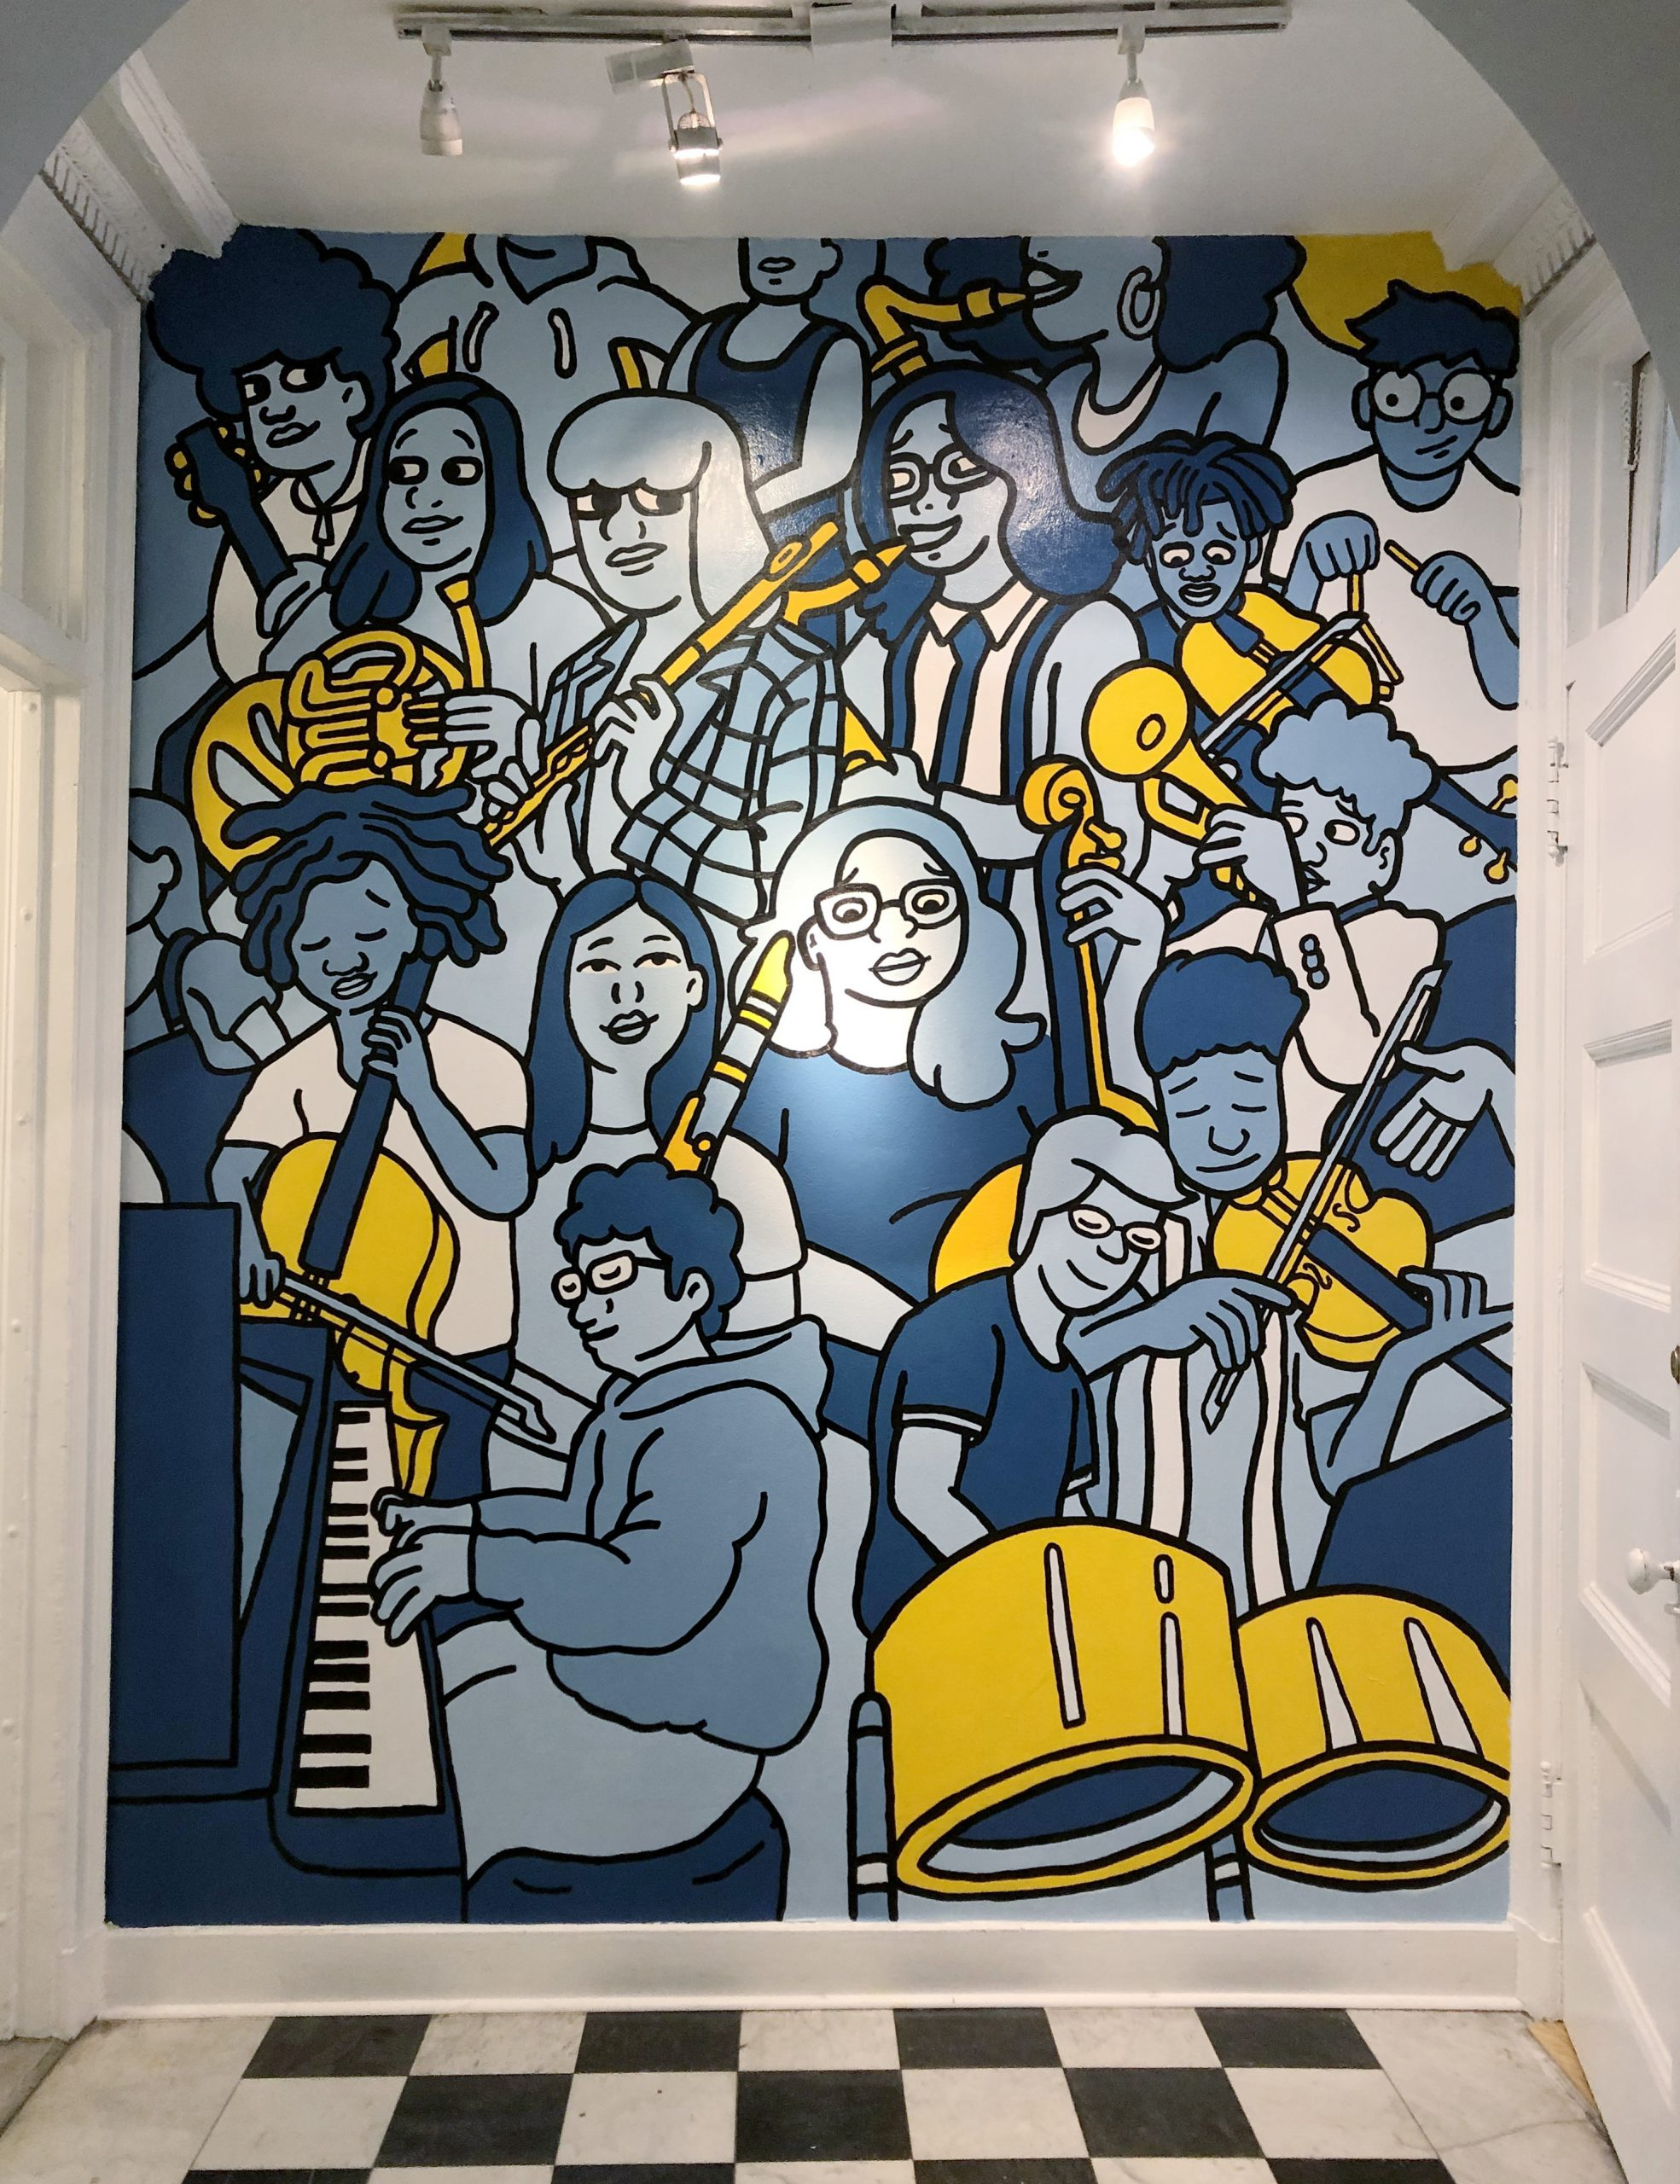 Photo of CYSO's completed mural featuring cartoon images of young musicians